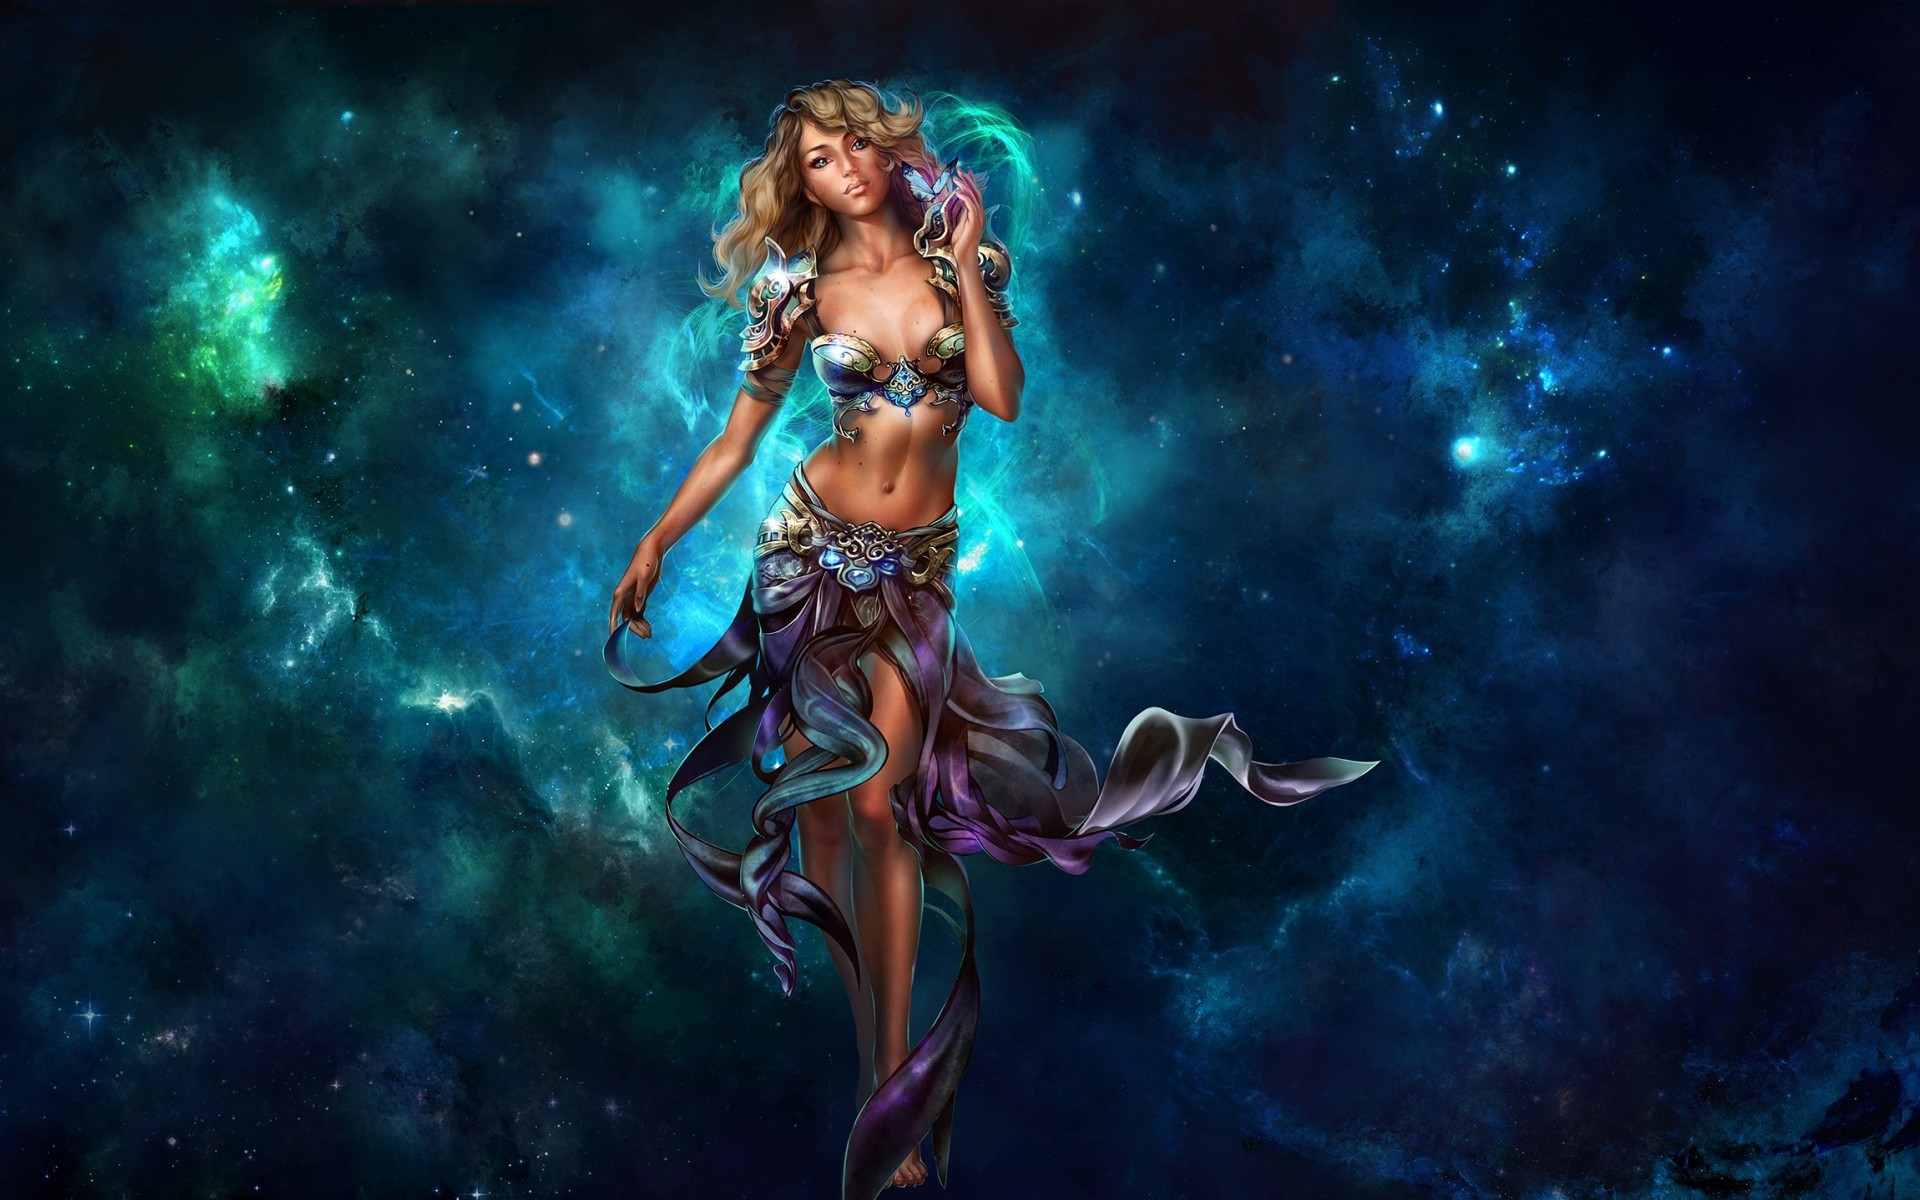 Star Ocean The Last Hope reimi fantasy archer women females girls babes sexy sensual weapons bow brunette